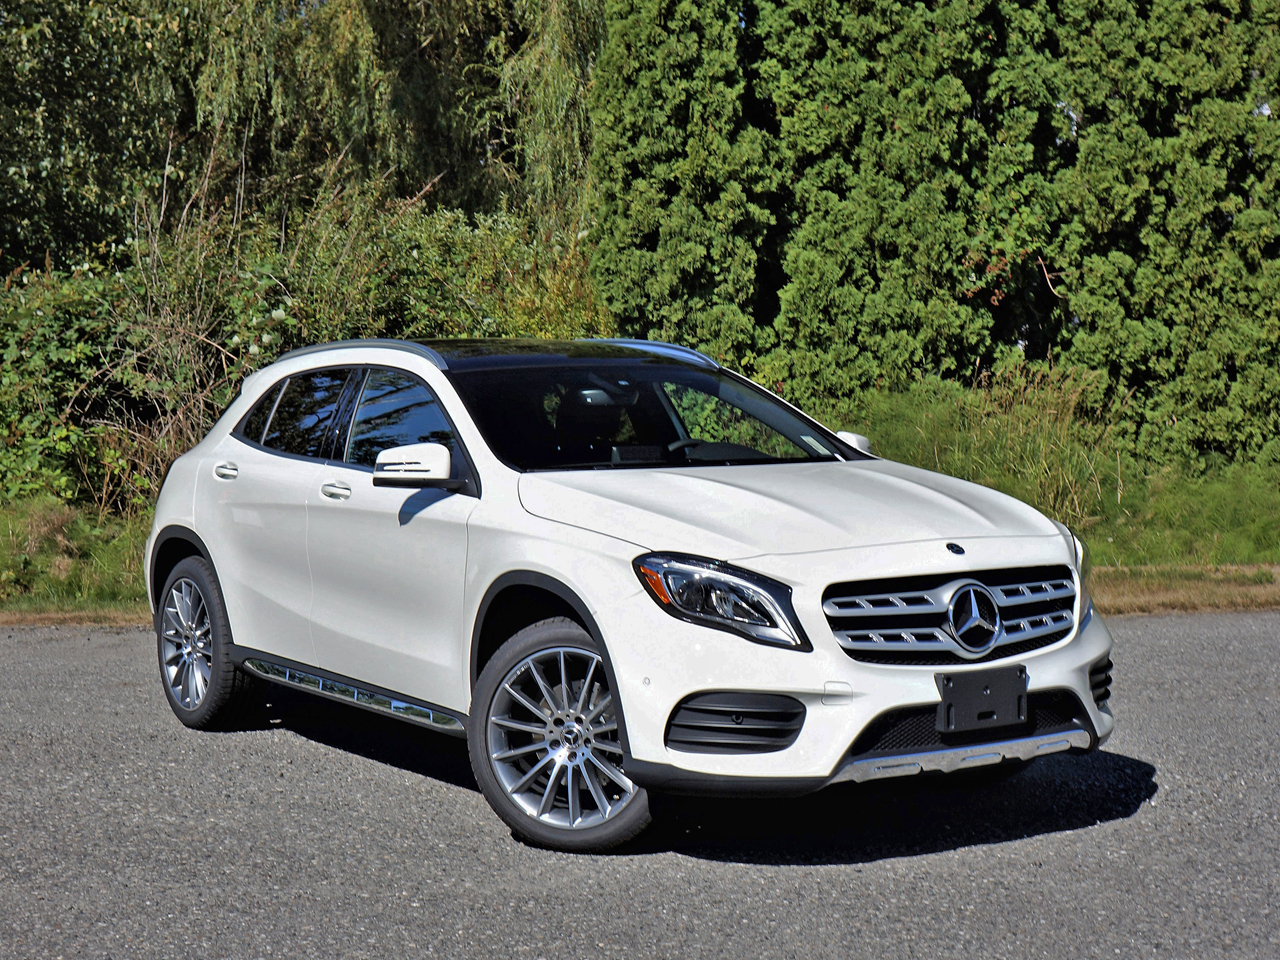 Mercedes Of Warwick >> 2018 Gla 250 4matic | Motavera.com